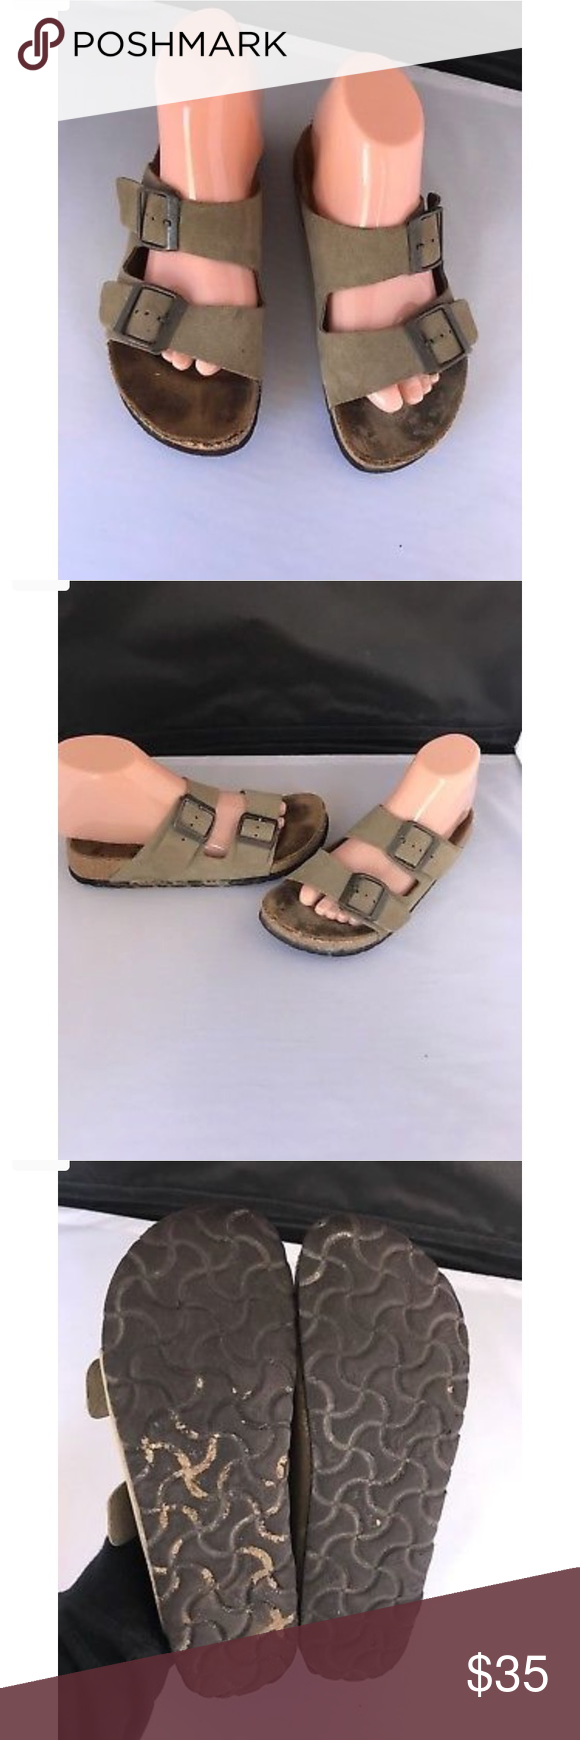 c806c2cc1423 Basic Newalk Birkenstock Two Strap Sandals Sz 37 asic Newalk Birkenstock  Two Strap Beige Sandals 37